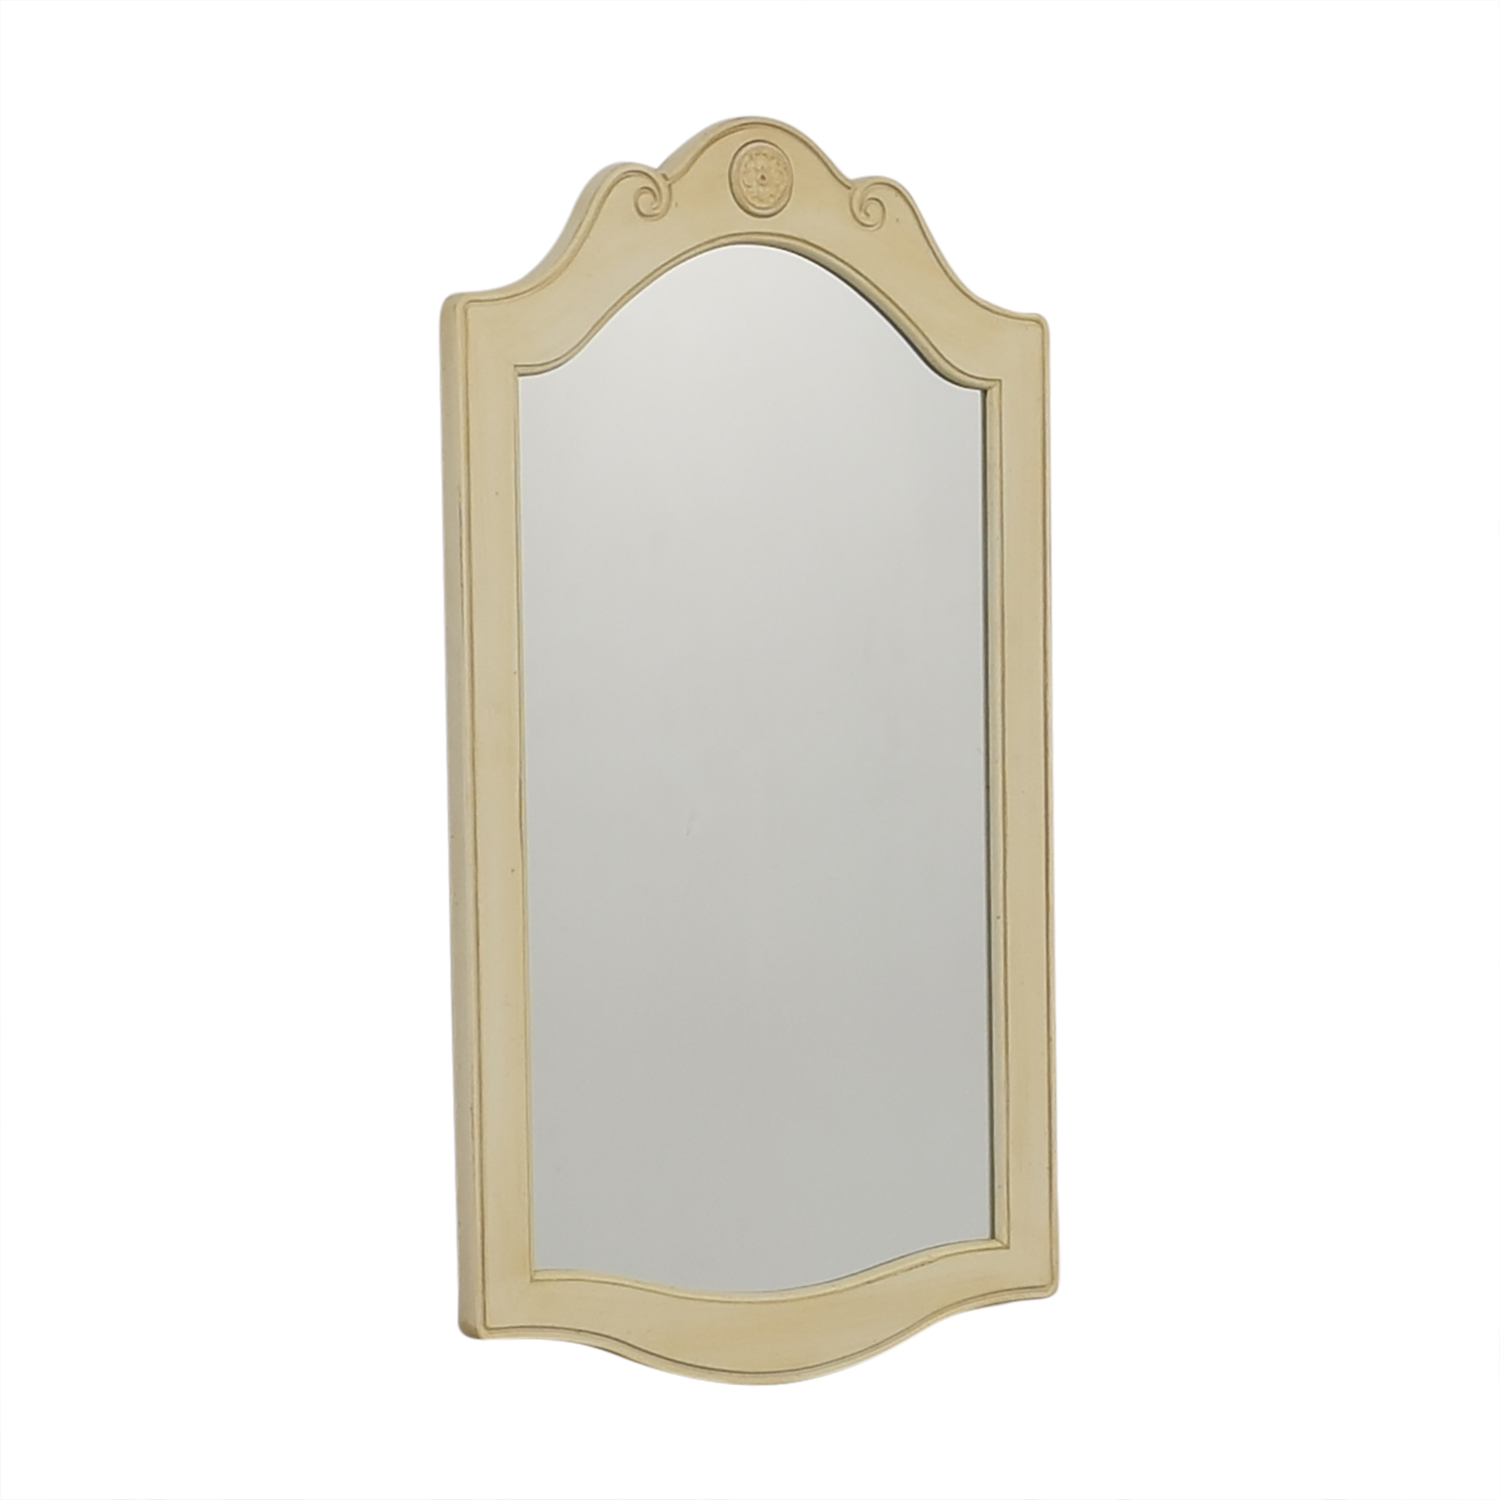 Ethan Allen Ethan Allen French Country Style Mirror discount